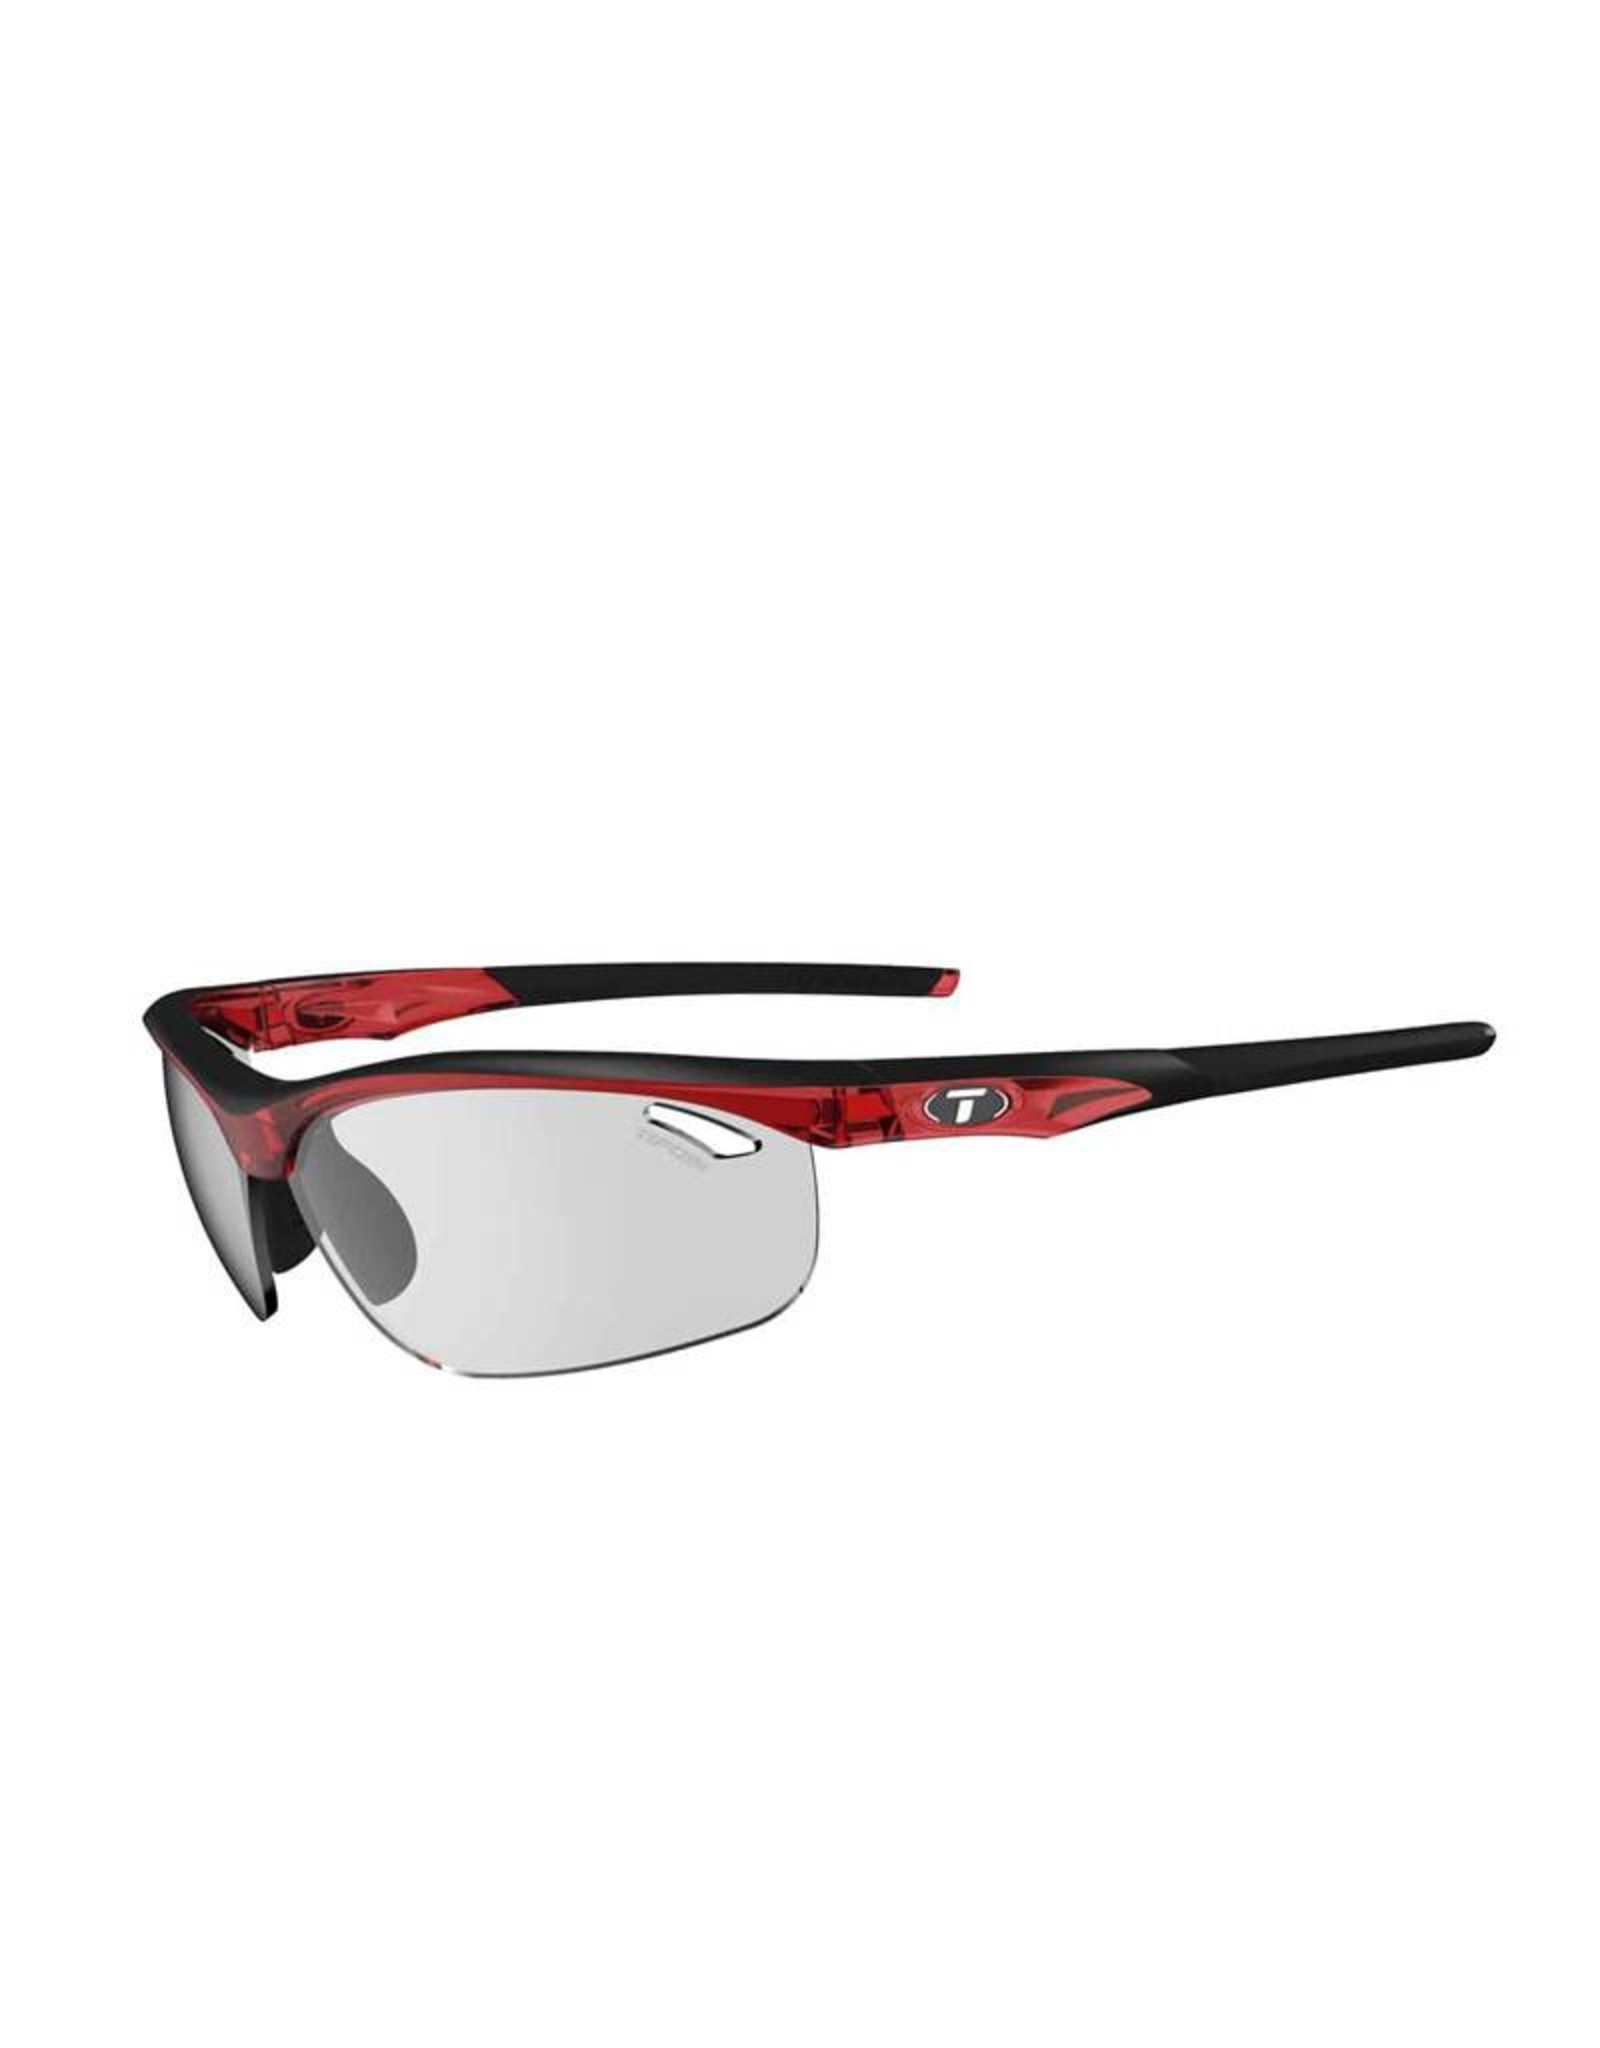 TIFOSI OPTICS VELOCE CRYSTAL RED